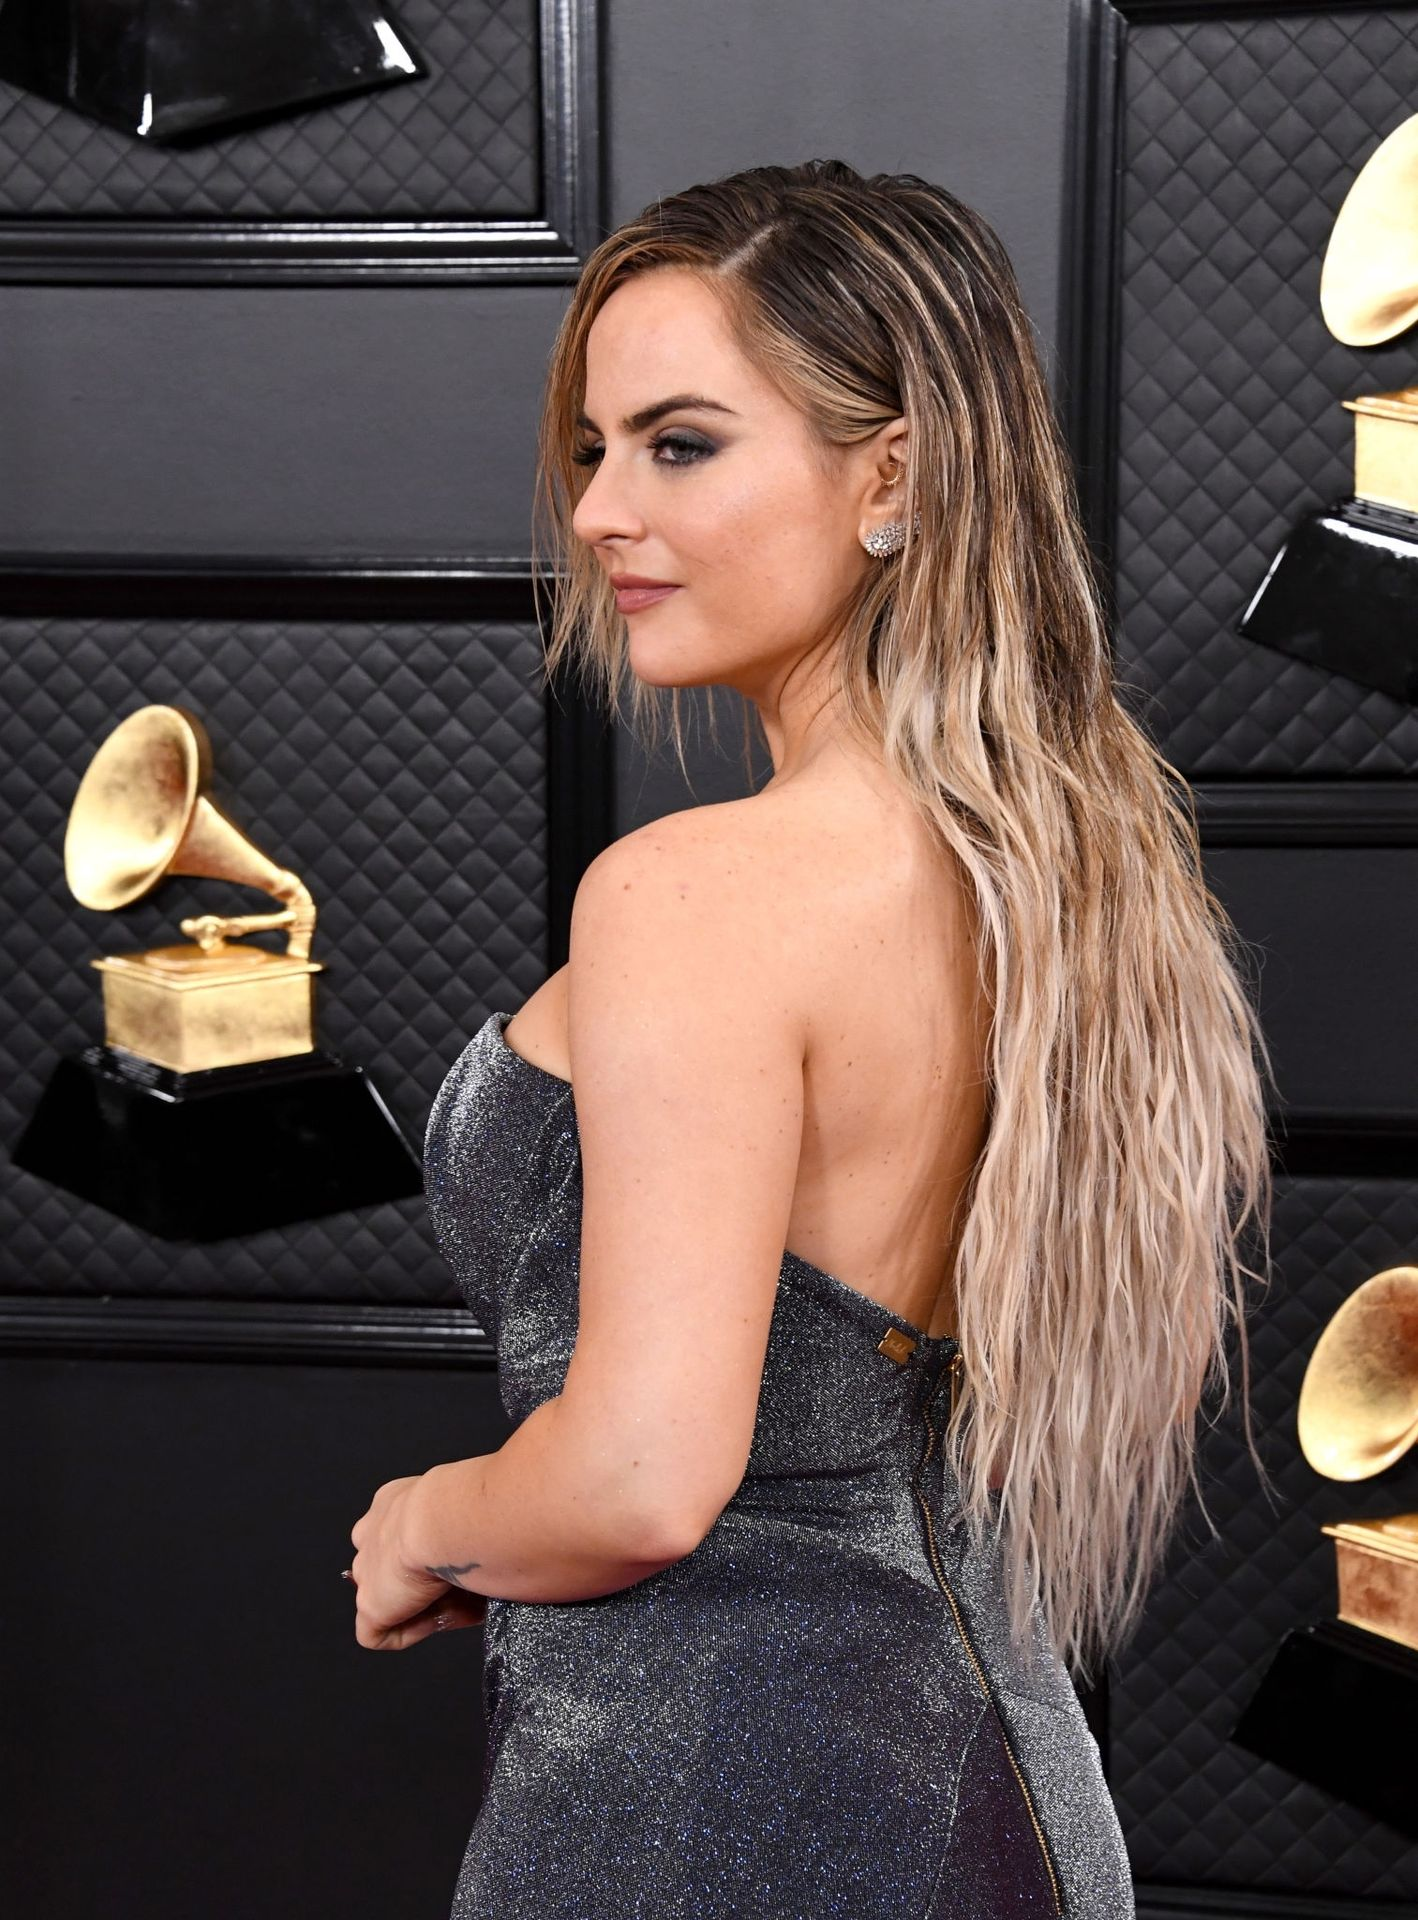 Jojo Shows Her Legs And Cleavage At The 62nd Annual Grammy Awards 0008